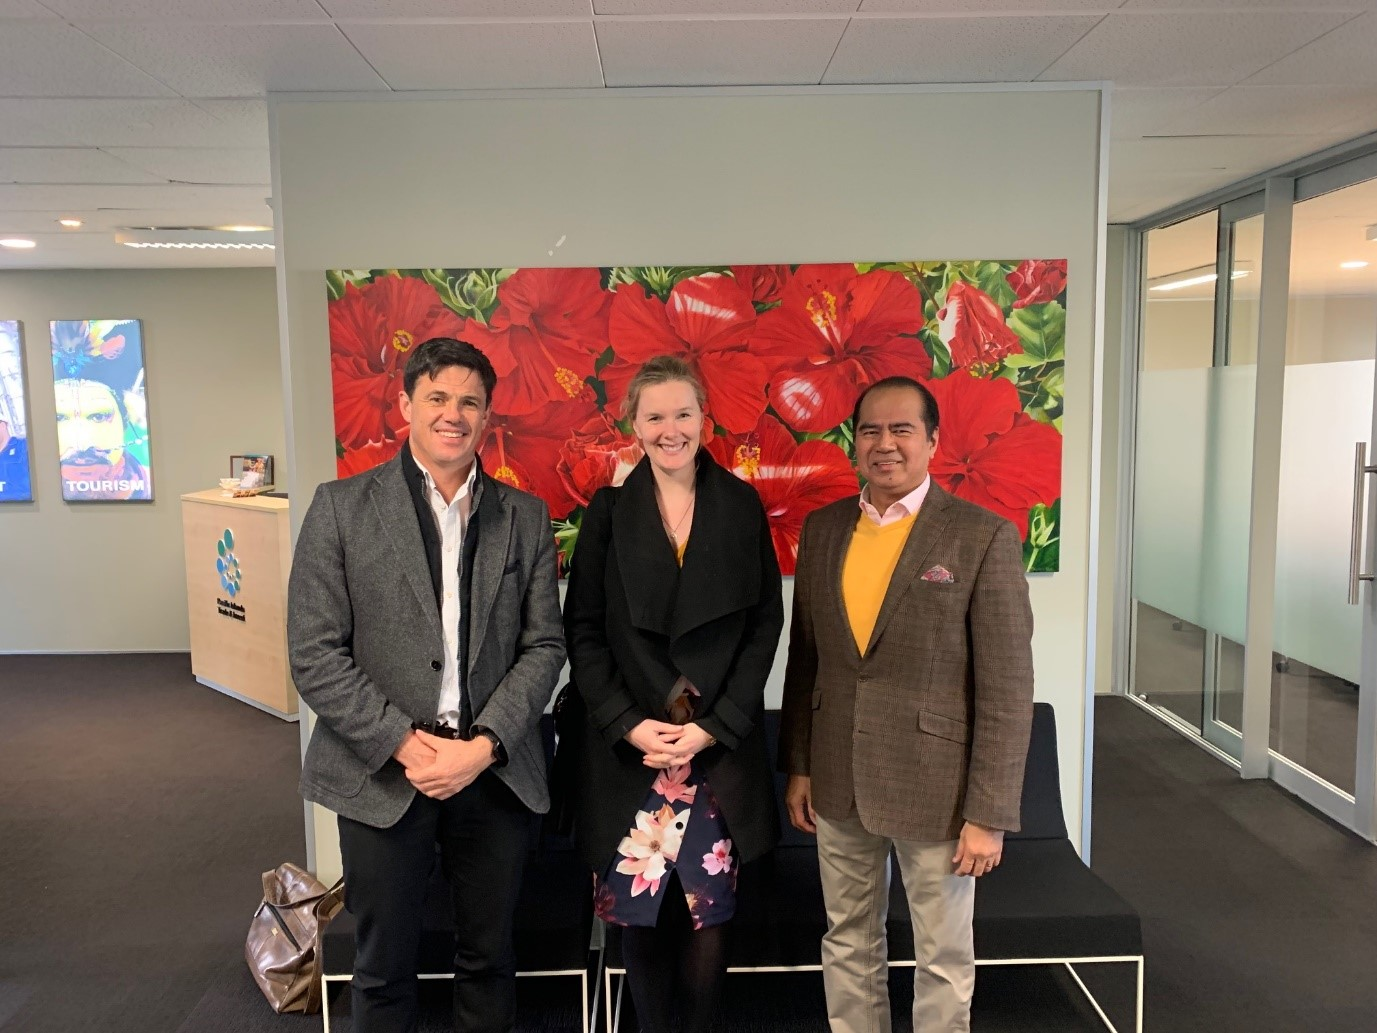 L-R Gareth Smith, Unit Manager of NZ MFAT, Jennifer Anderson, Senior Adviser of NZ MFAT, and Manuel Valdez, Acting Trade and Investment Commissioner of PTI Auckland